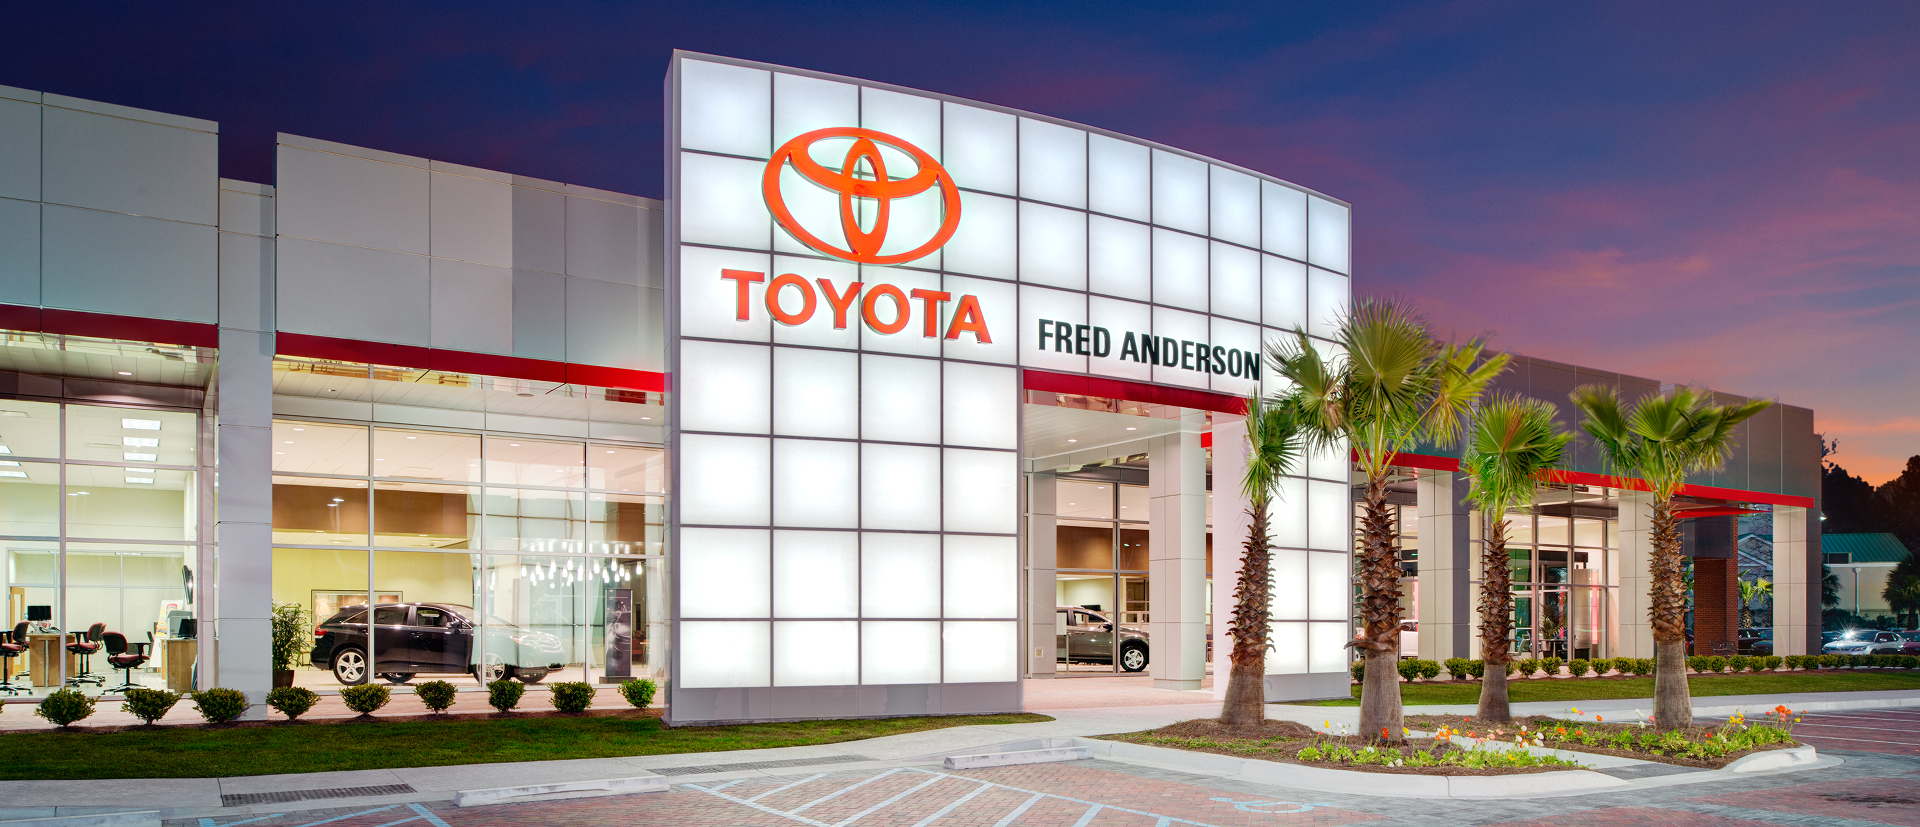 Fred Anderson Toyota New Toyota And Used Car Dealer